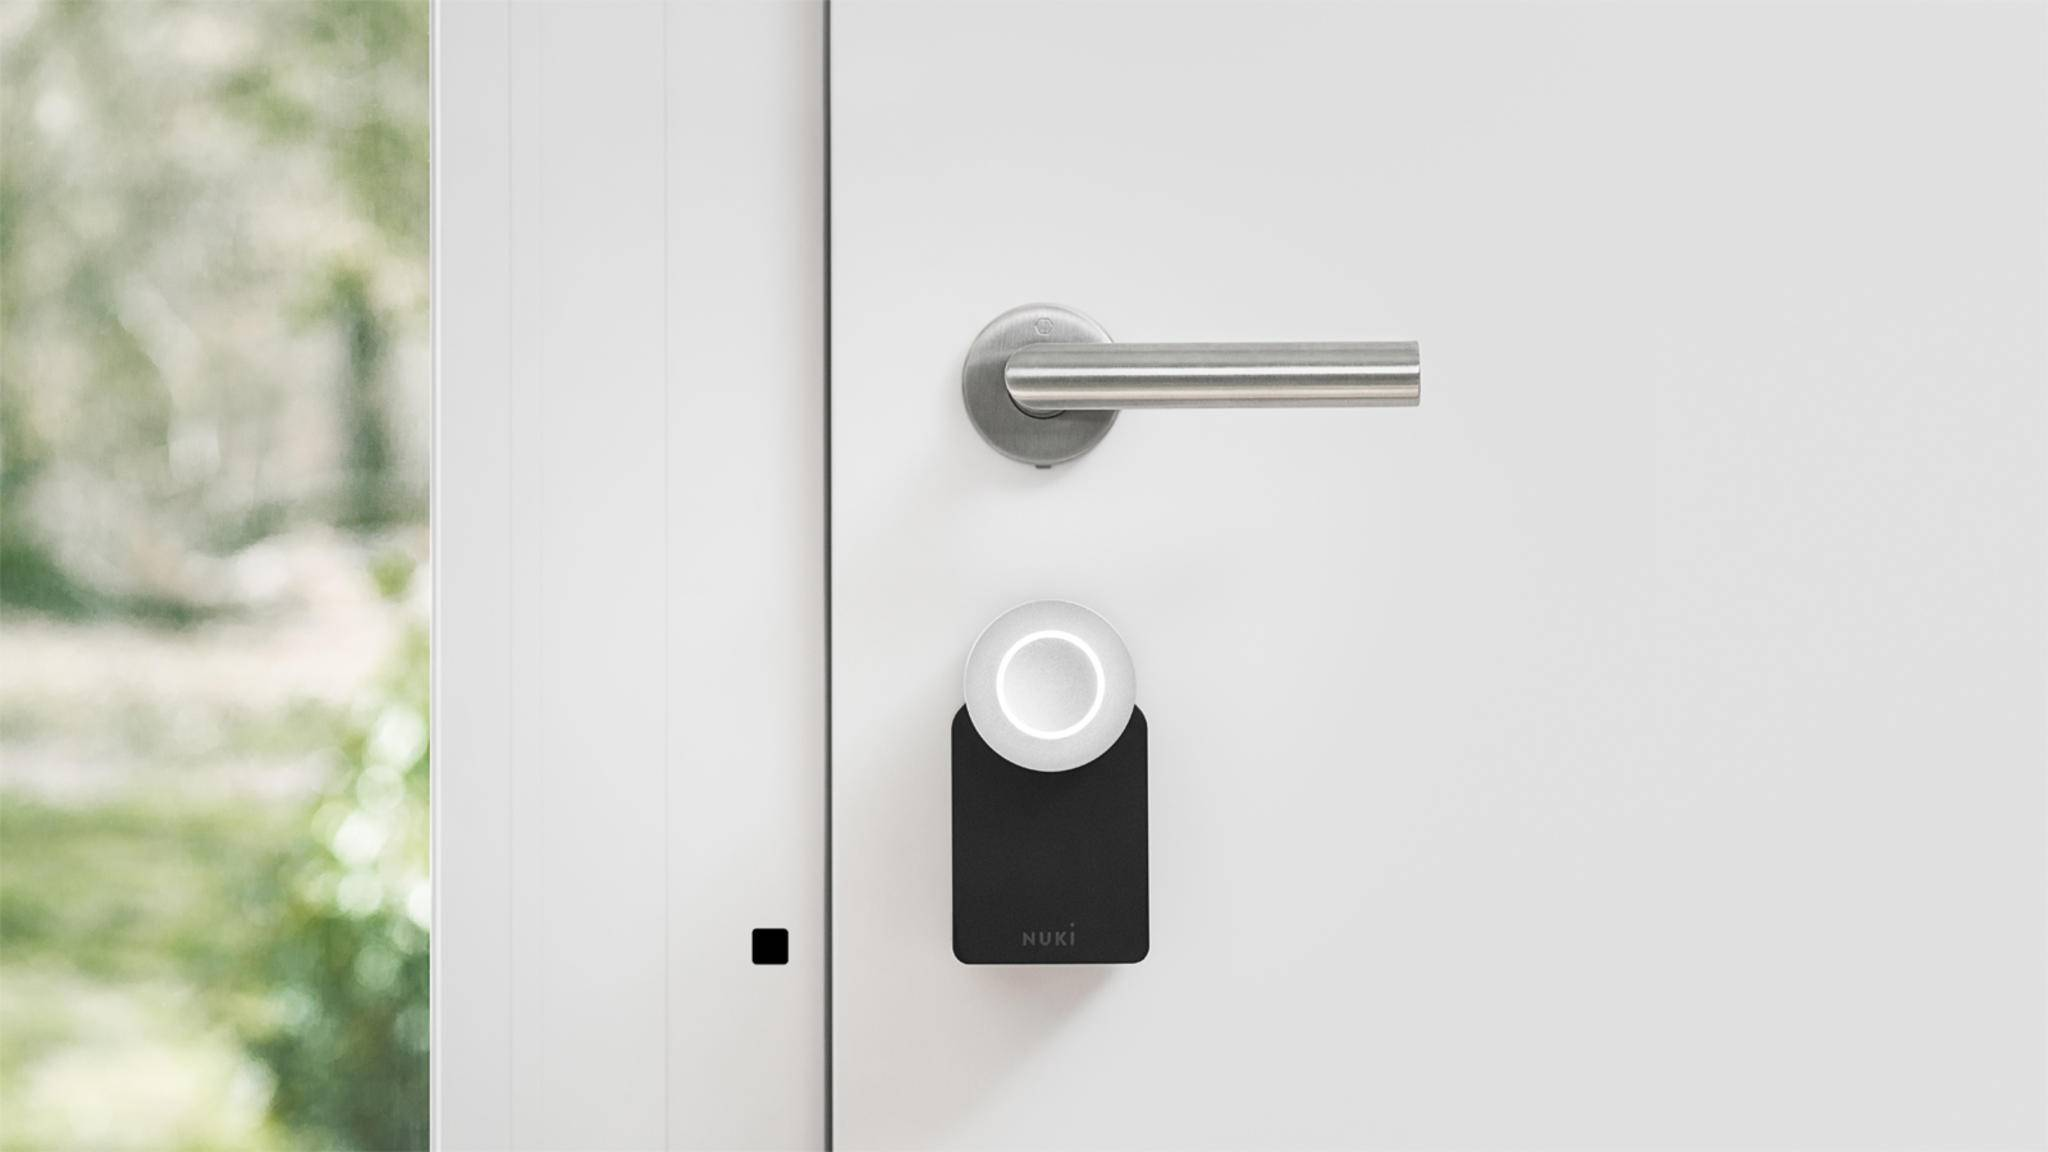 nuki smart lock schloss